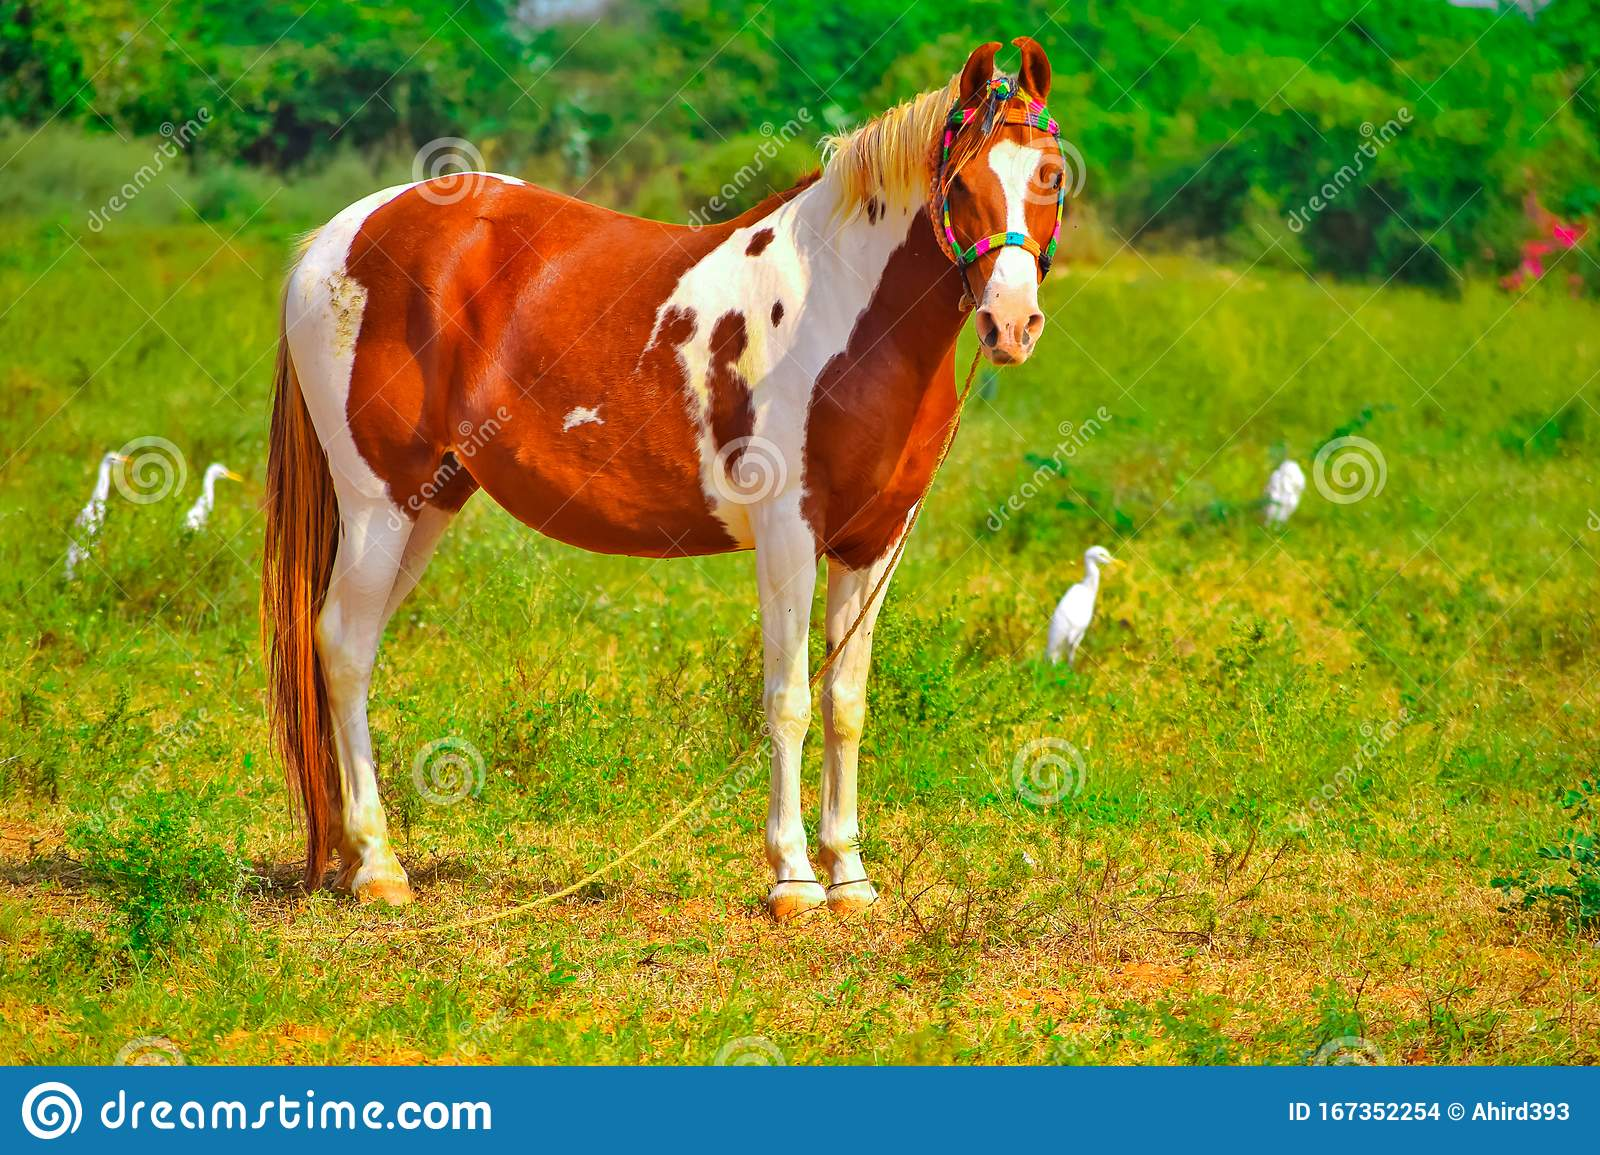 Clydesdale Horse Standing On Ground Brown And White Horse Standing In High Grass Arabic Horse In A Meadow Running Playing Stock Photo Image Of Equestrian Nature 167352254